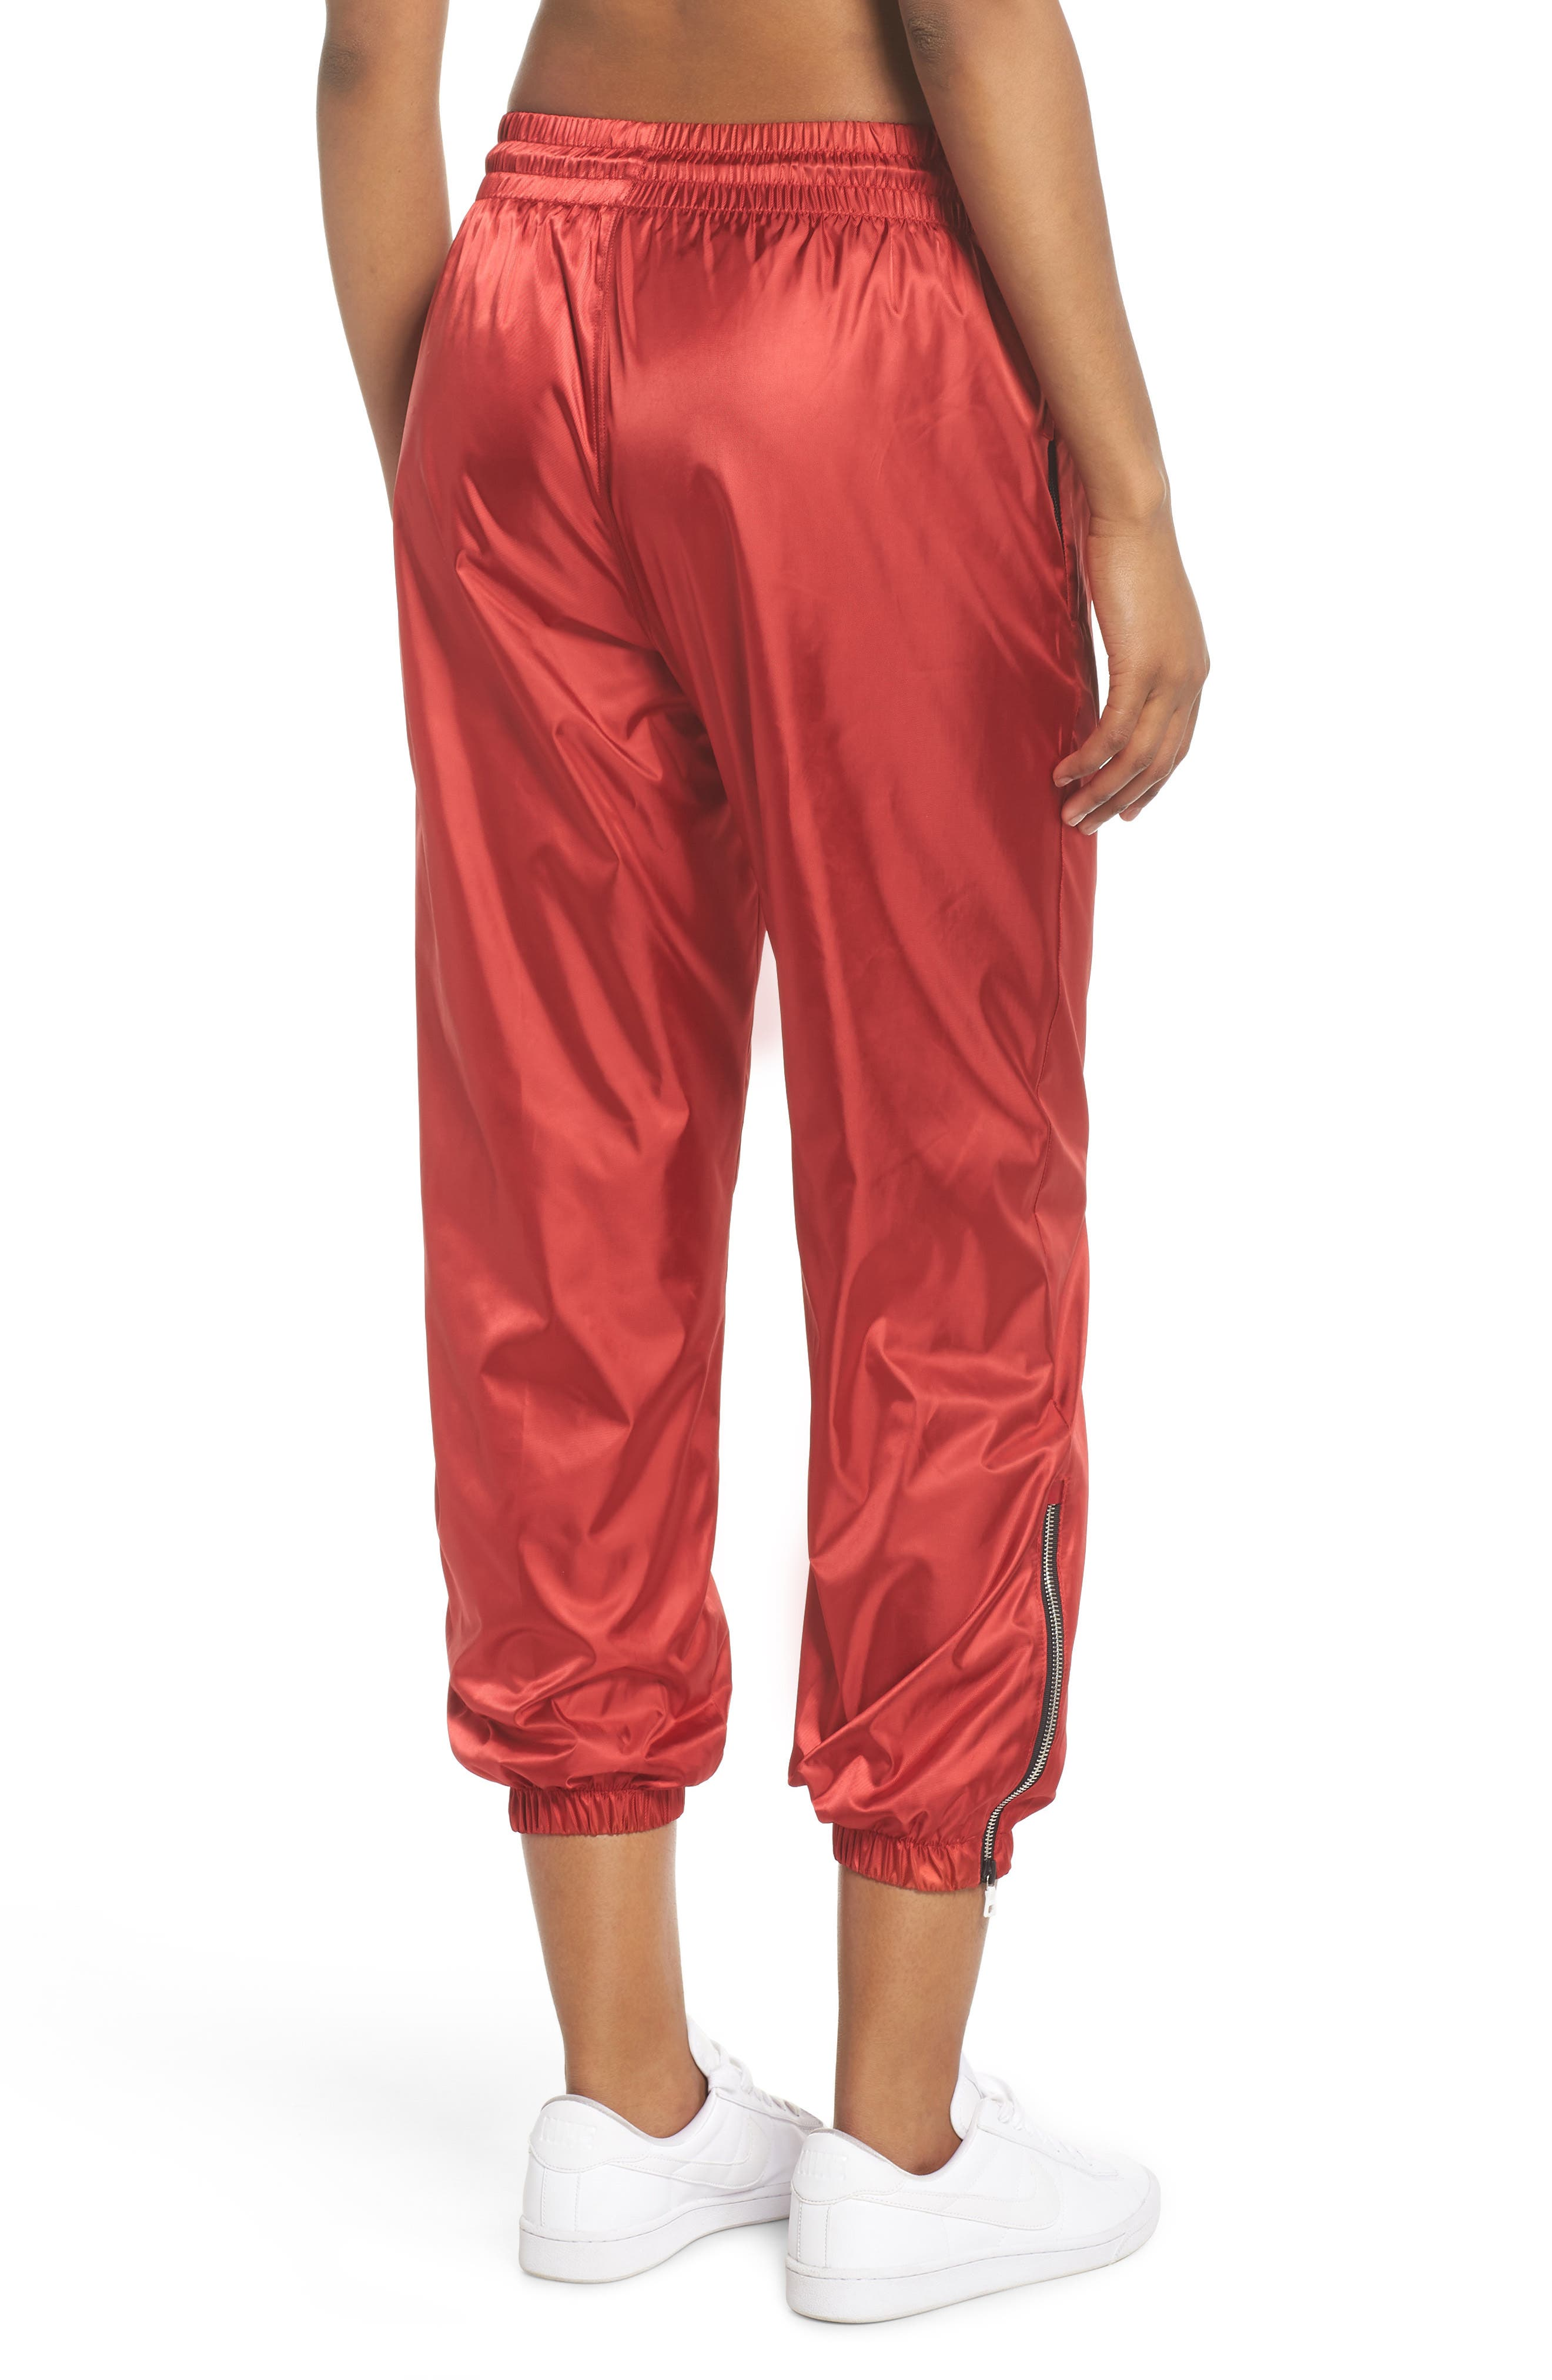 NikeLab Collection Women's Satin Track Pants,                             Alternate thumbnail 2, color,                             Gym Red/ Black